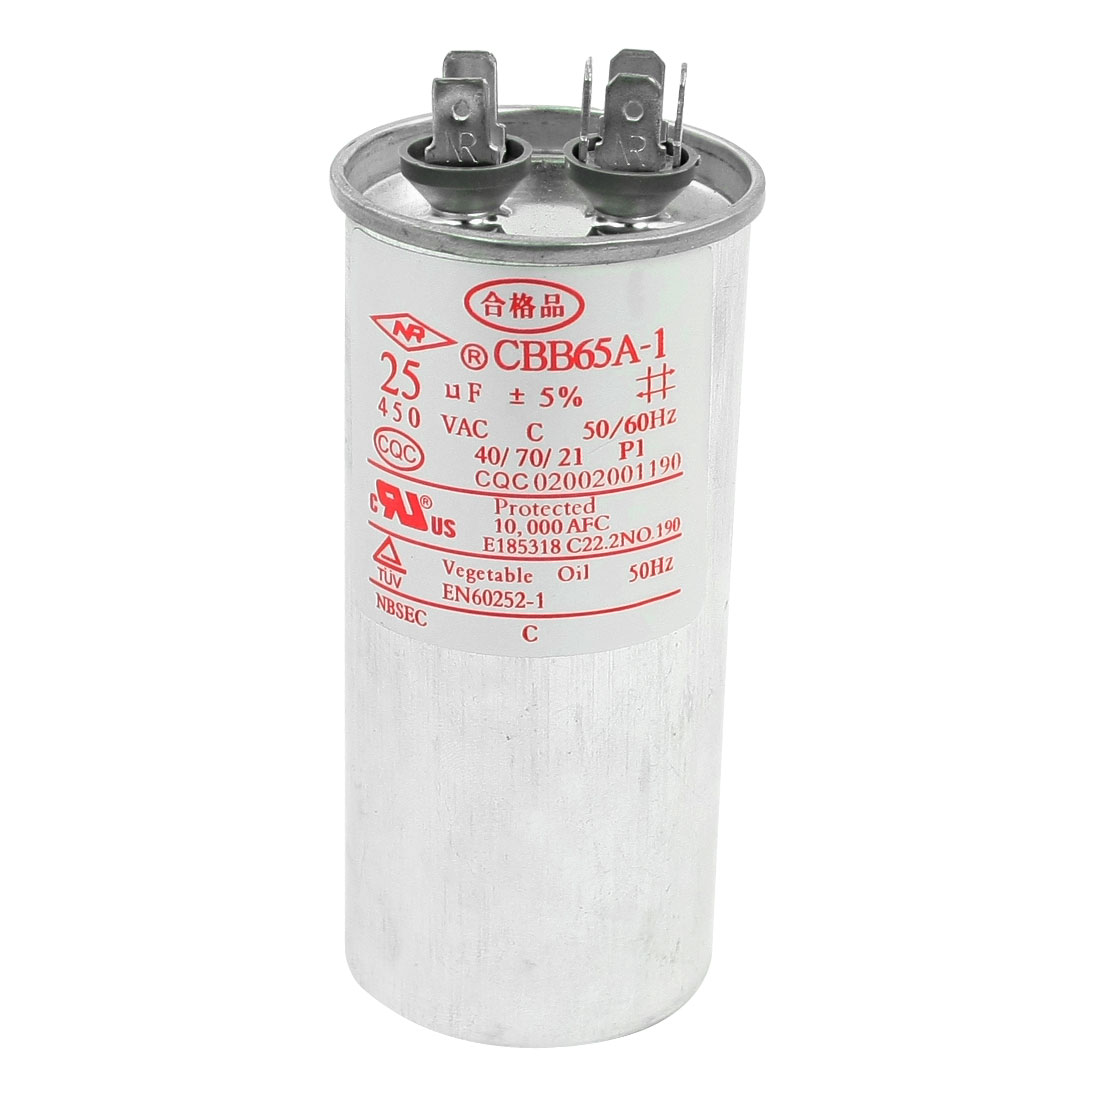 AC 450V CBB65A-1 25uF 5% 50/60Hz Cylinder Shape 6 Terminals Air Conditioner Electrolytic Motor Run Capacitor Silver Tone